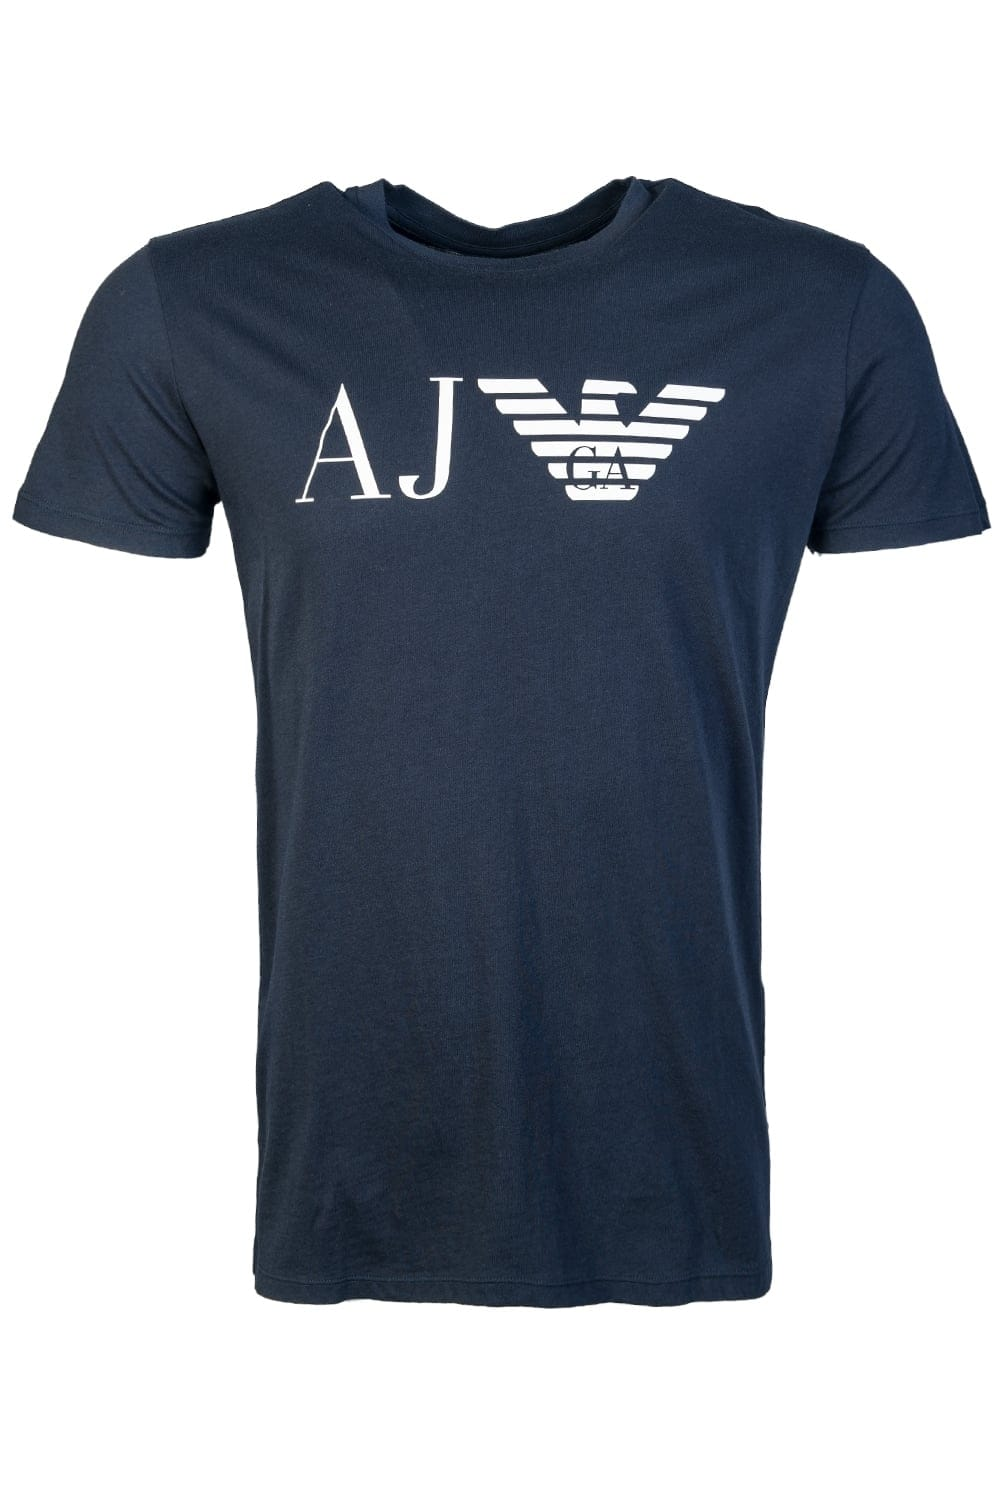 ef5d19f3 Armani Jeans T-Shirt 8N6T996JPFZ - Clothing from Sage Clothing UK